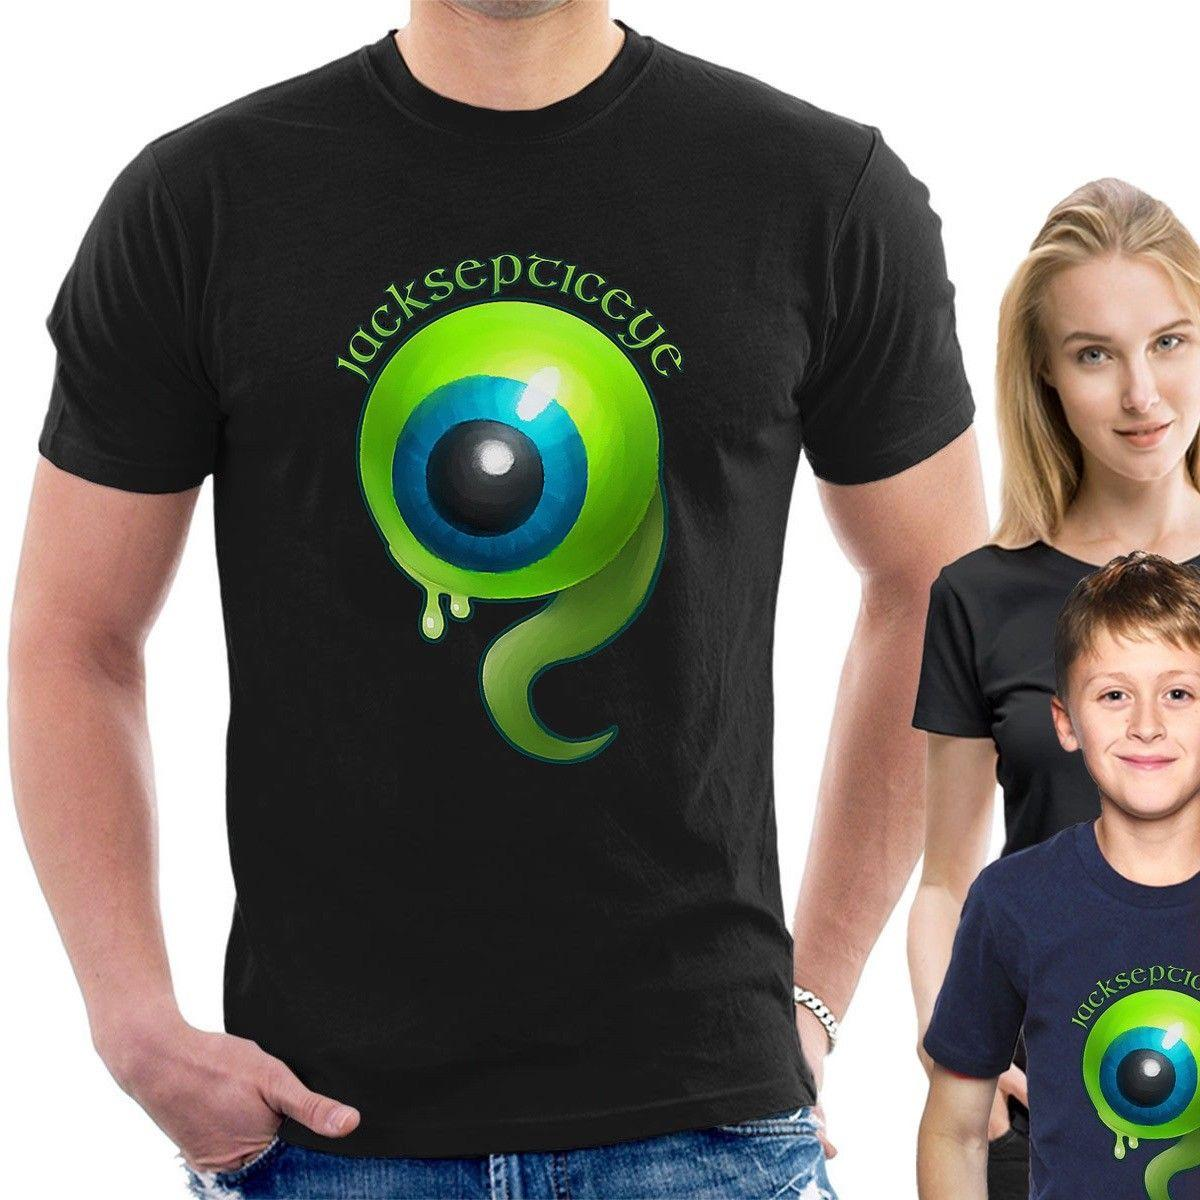 873b1d37f JACKSEPTICEYE T SHIRT Gaming Like A Boss Jack Septic Eye Tee B35 Cartoon T  Shirt Men Unisex New Fashion Dirty T Shirts Graphic Tee Shirts From  Designtshirts ...